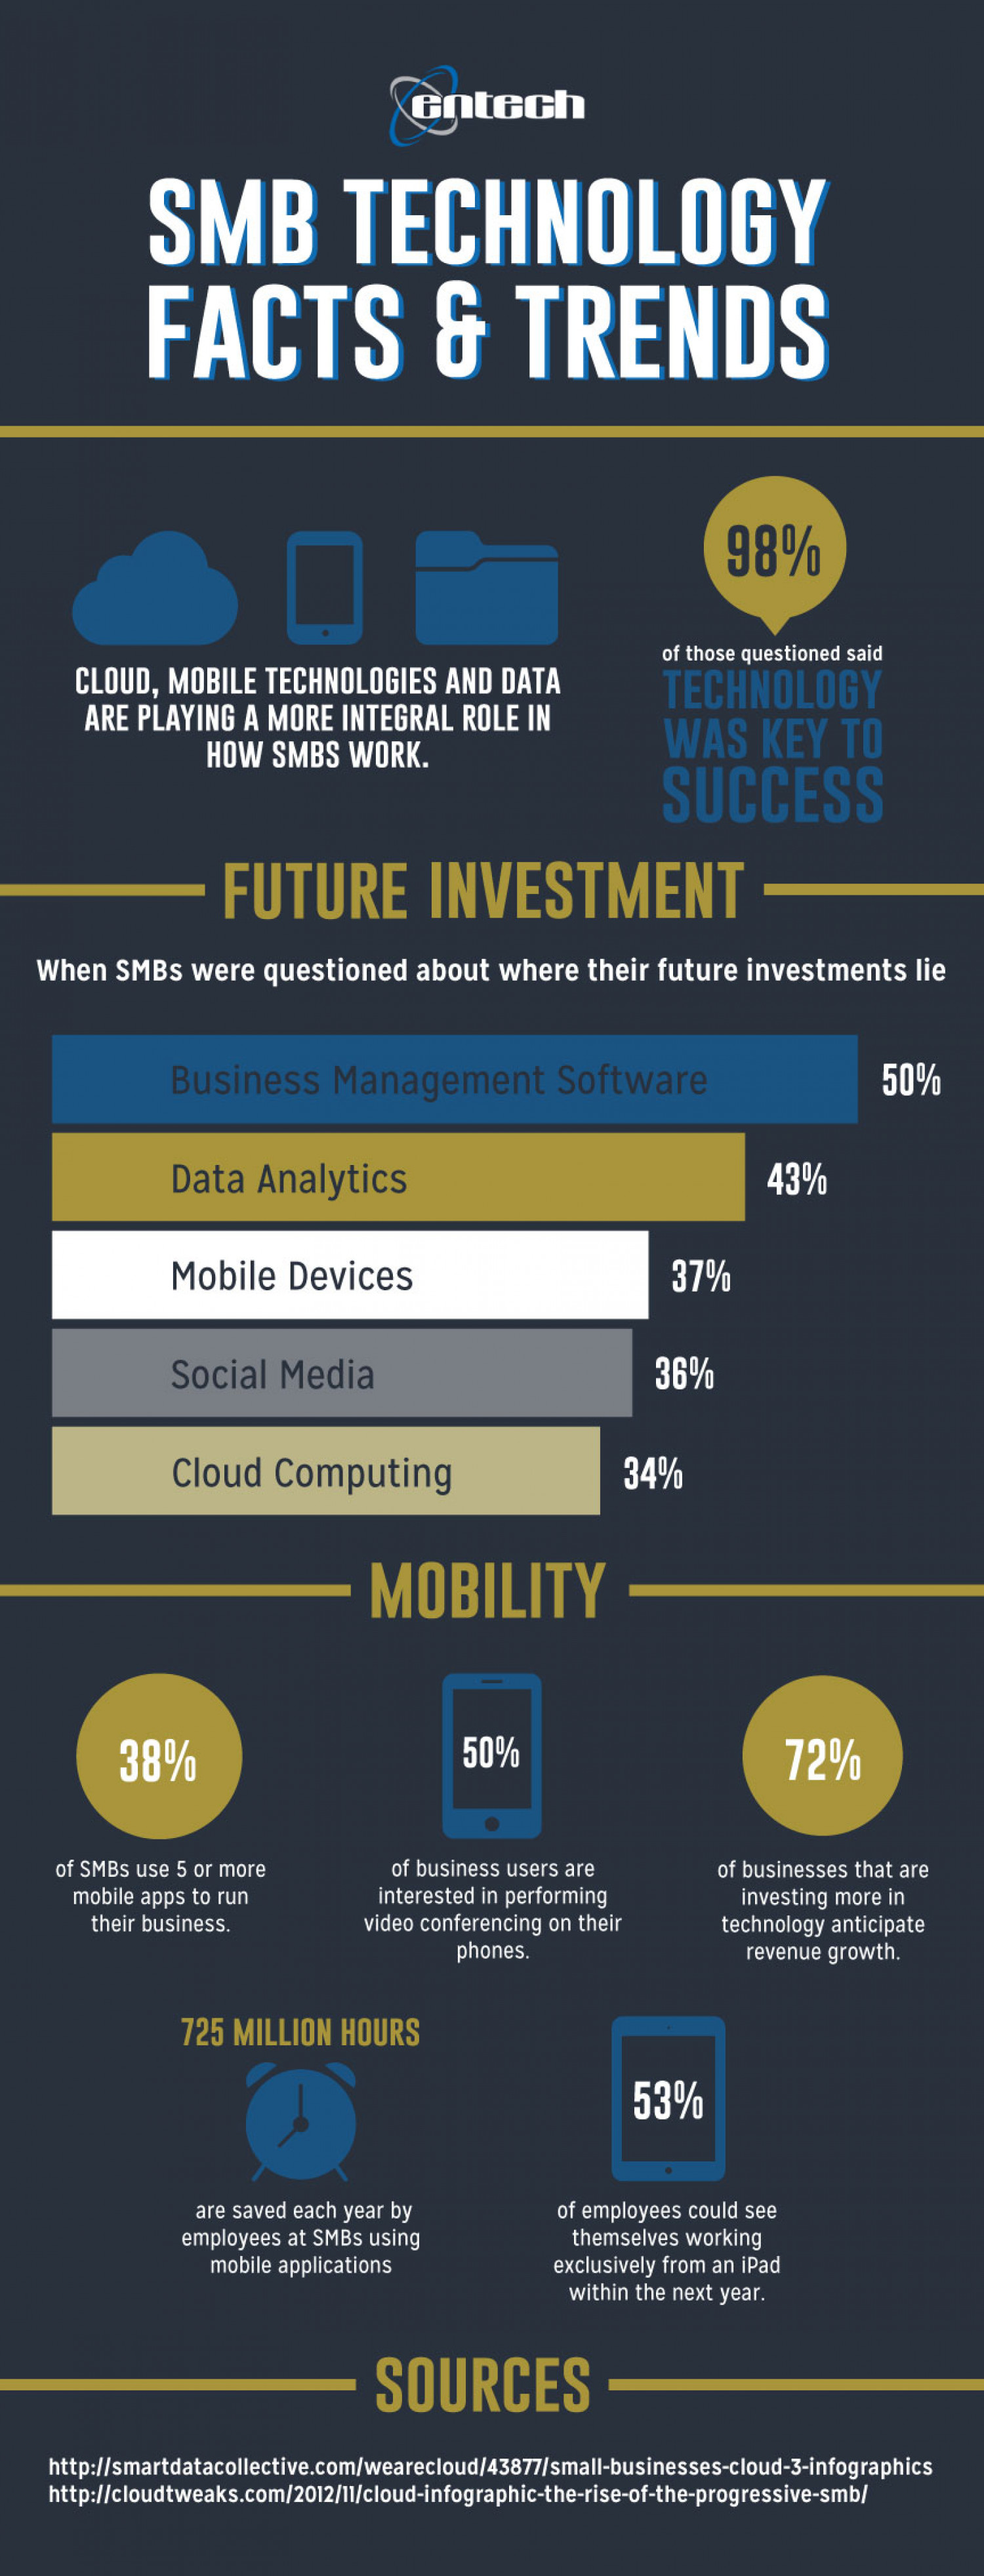 SMB Technology Facts & Trends Infographic